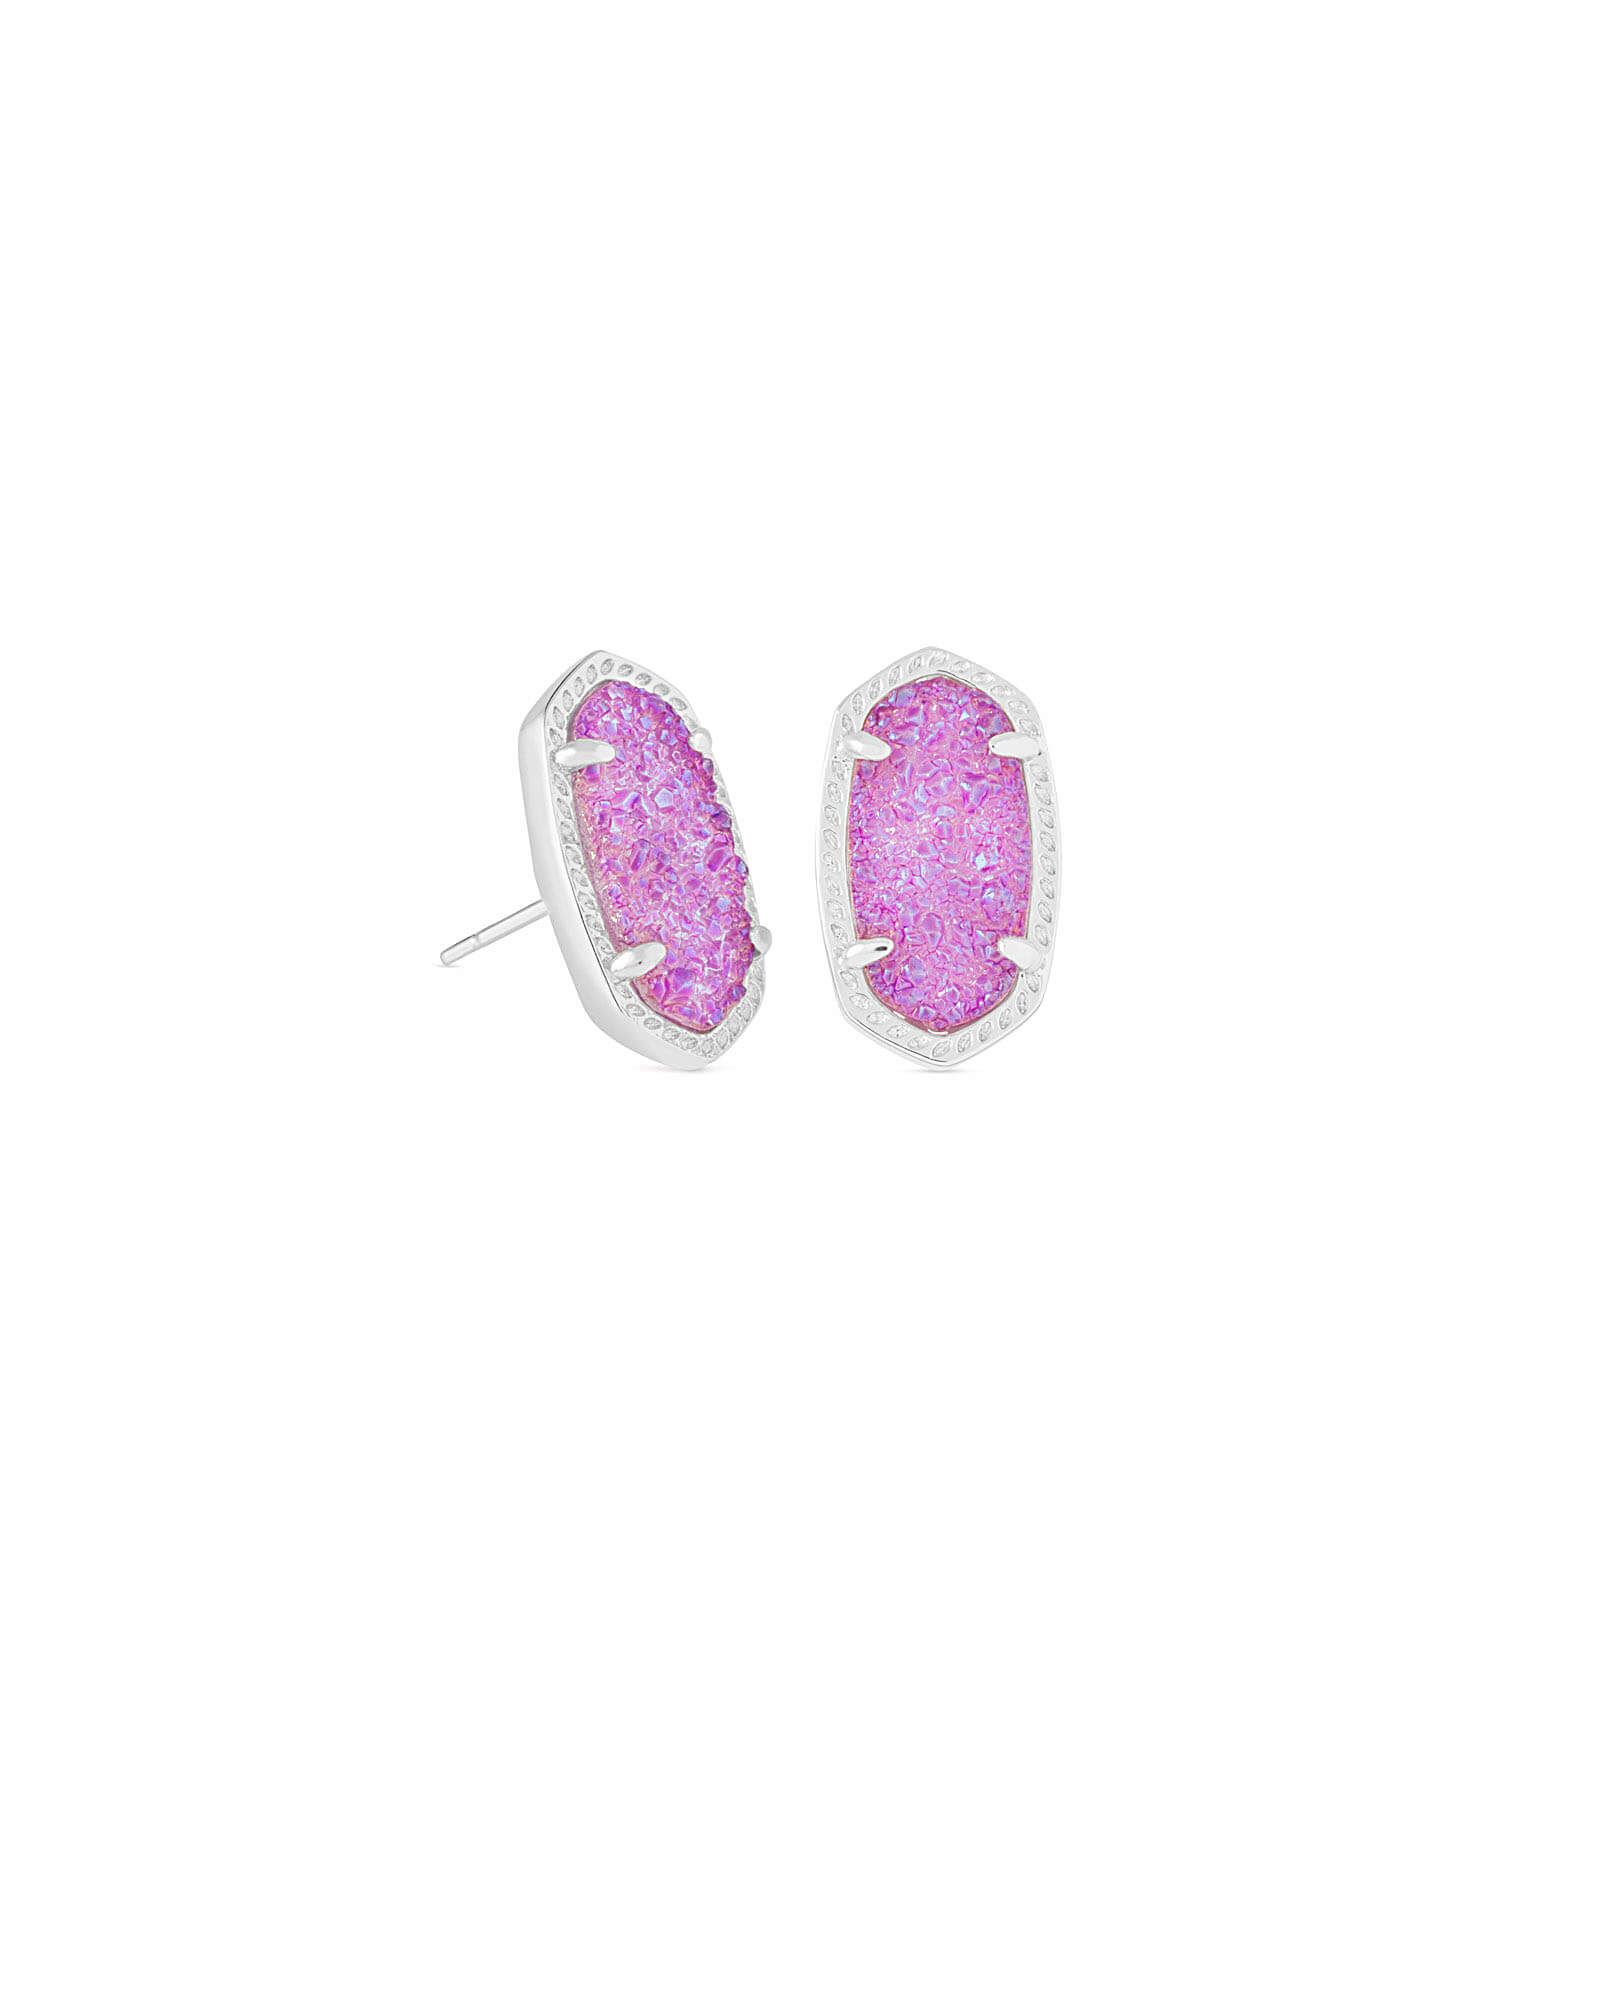 Ellie Silver Stud Earrings in Violet Drusy